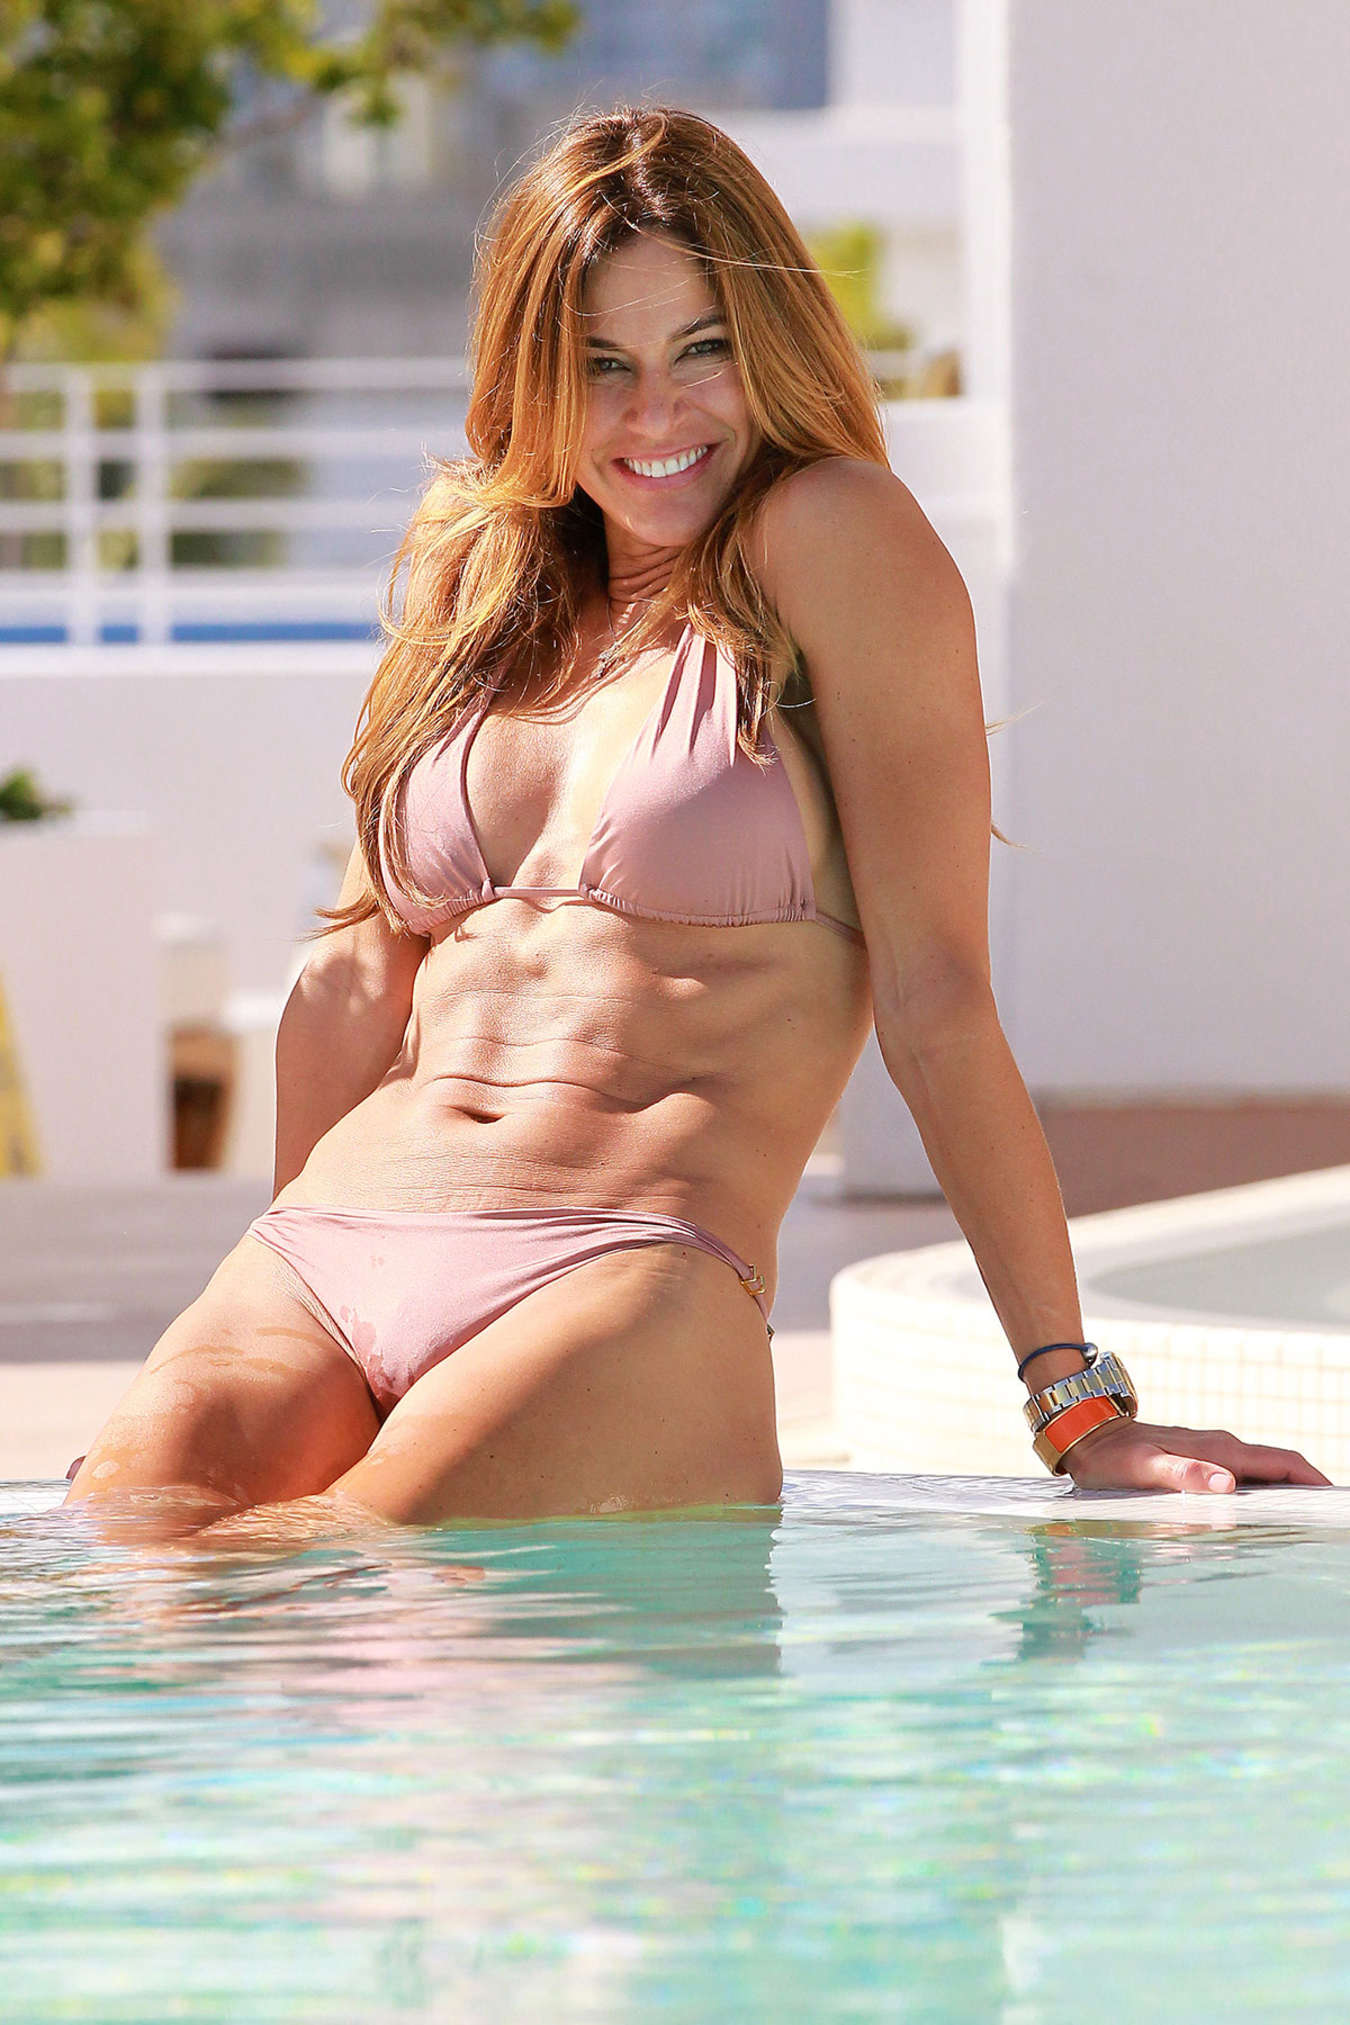 Kelly Bensimon in Bikini -18 - GotCeleb